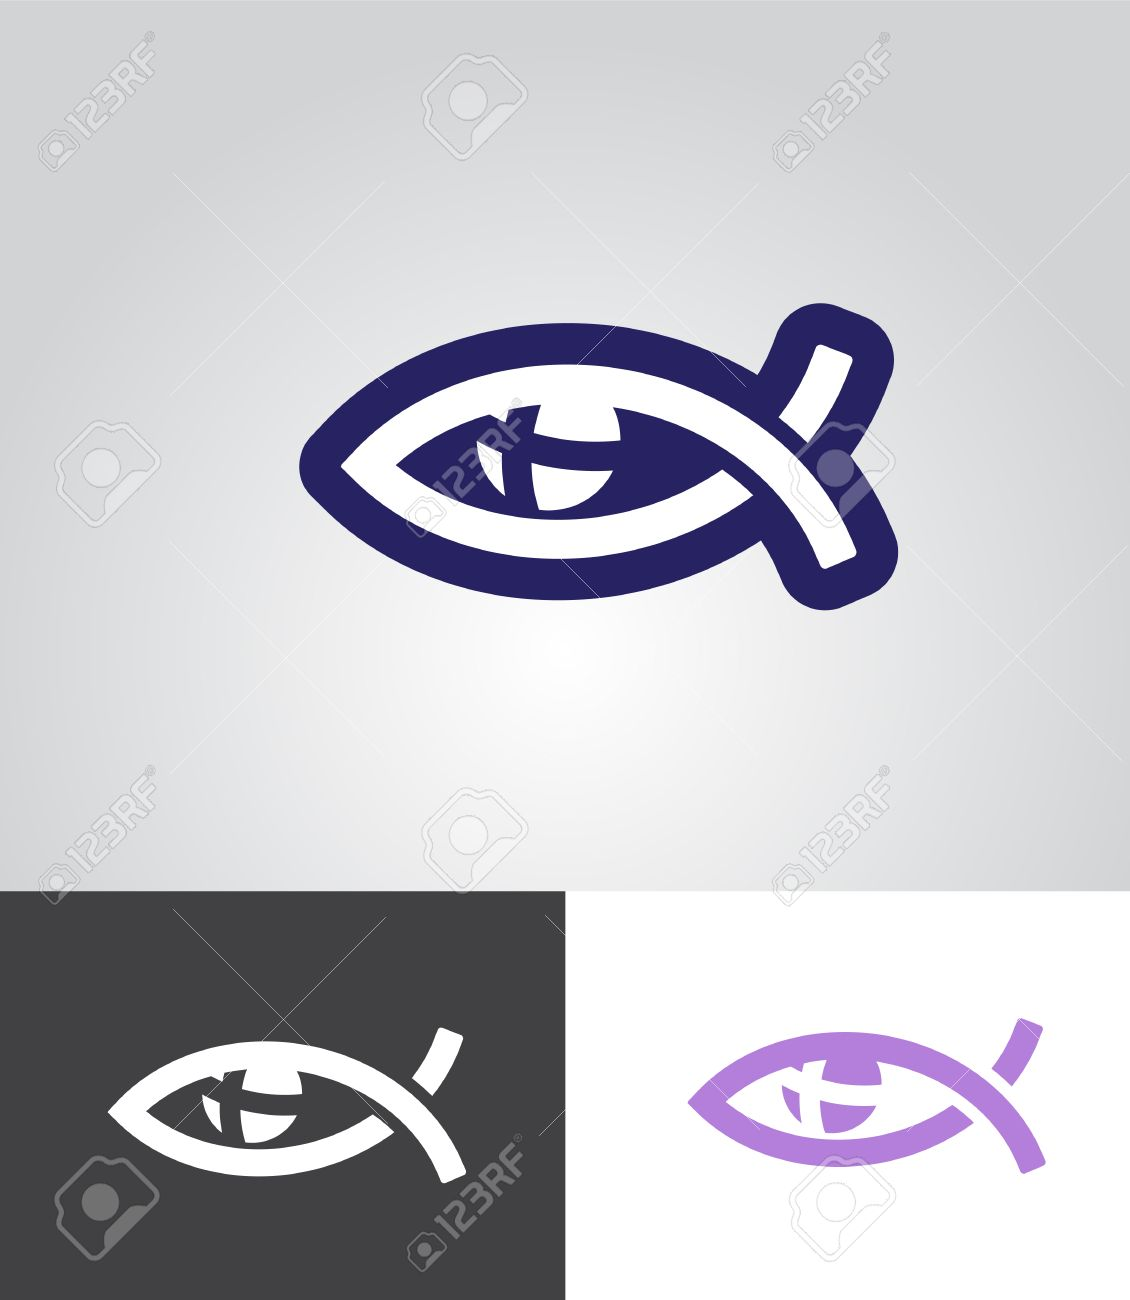 Christian Fish As Eye Symbol With Cross In Eyeball As Christian